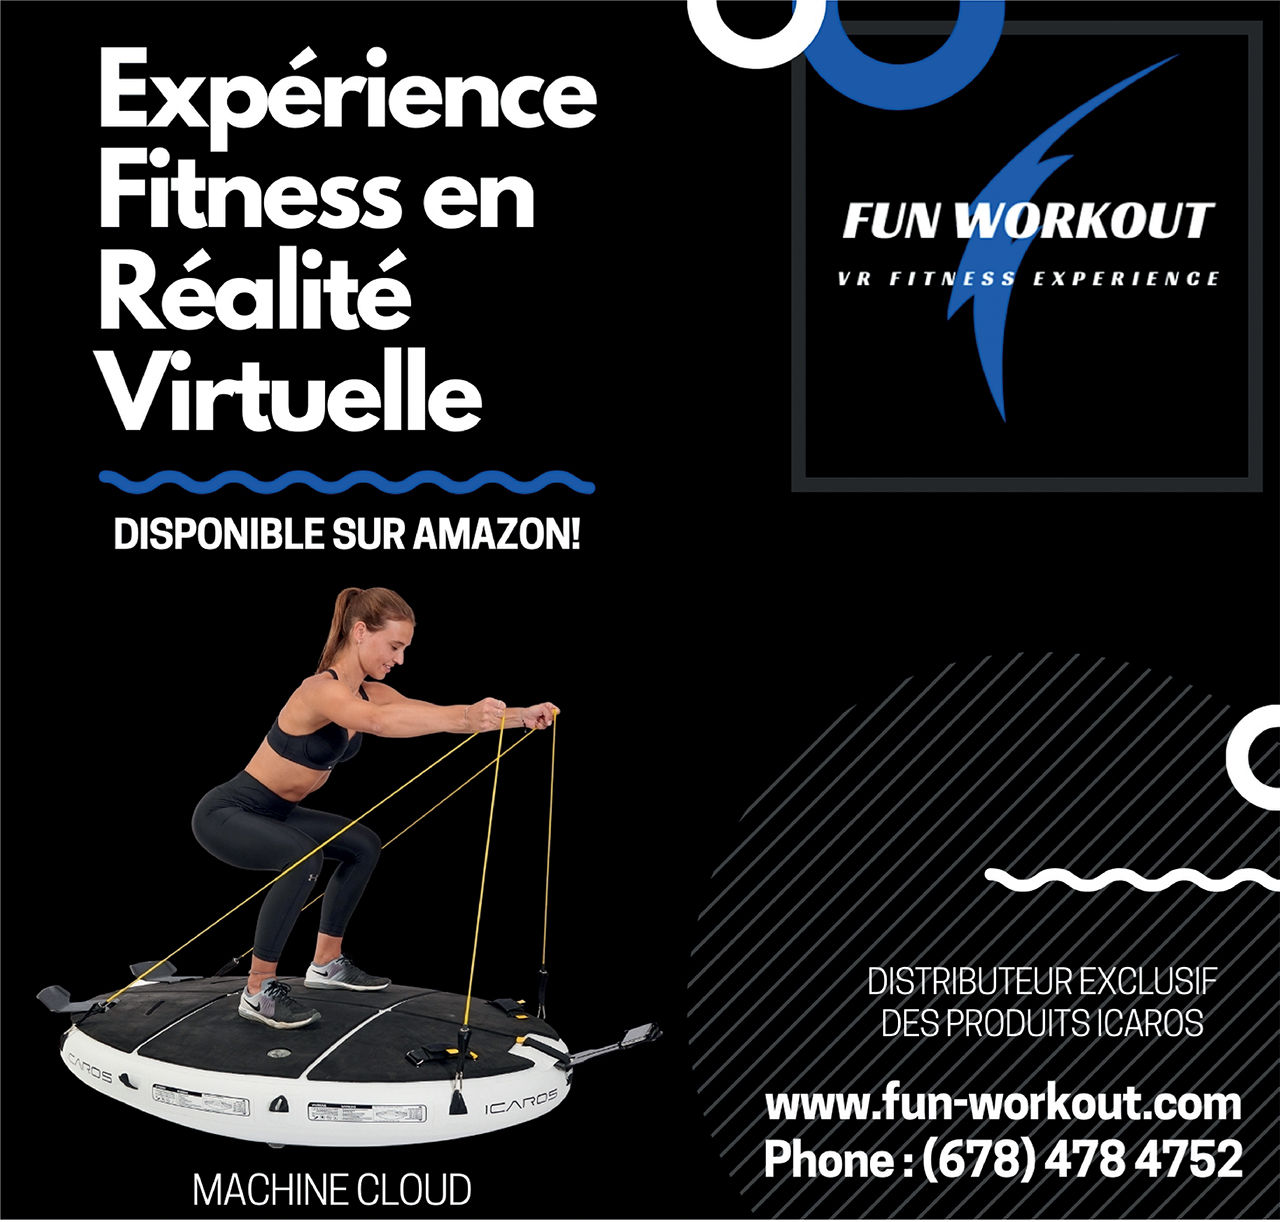 Fun workout: experience fitness en réalité virtuelle